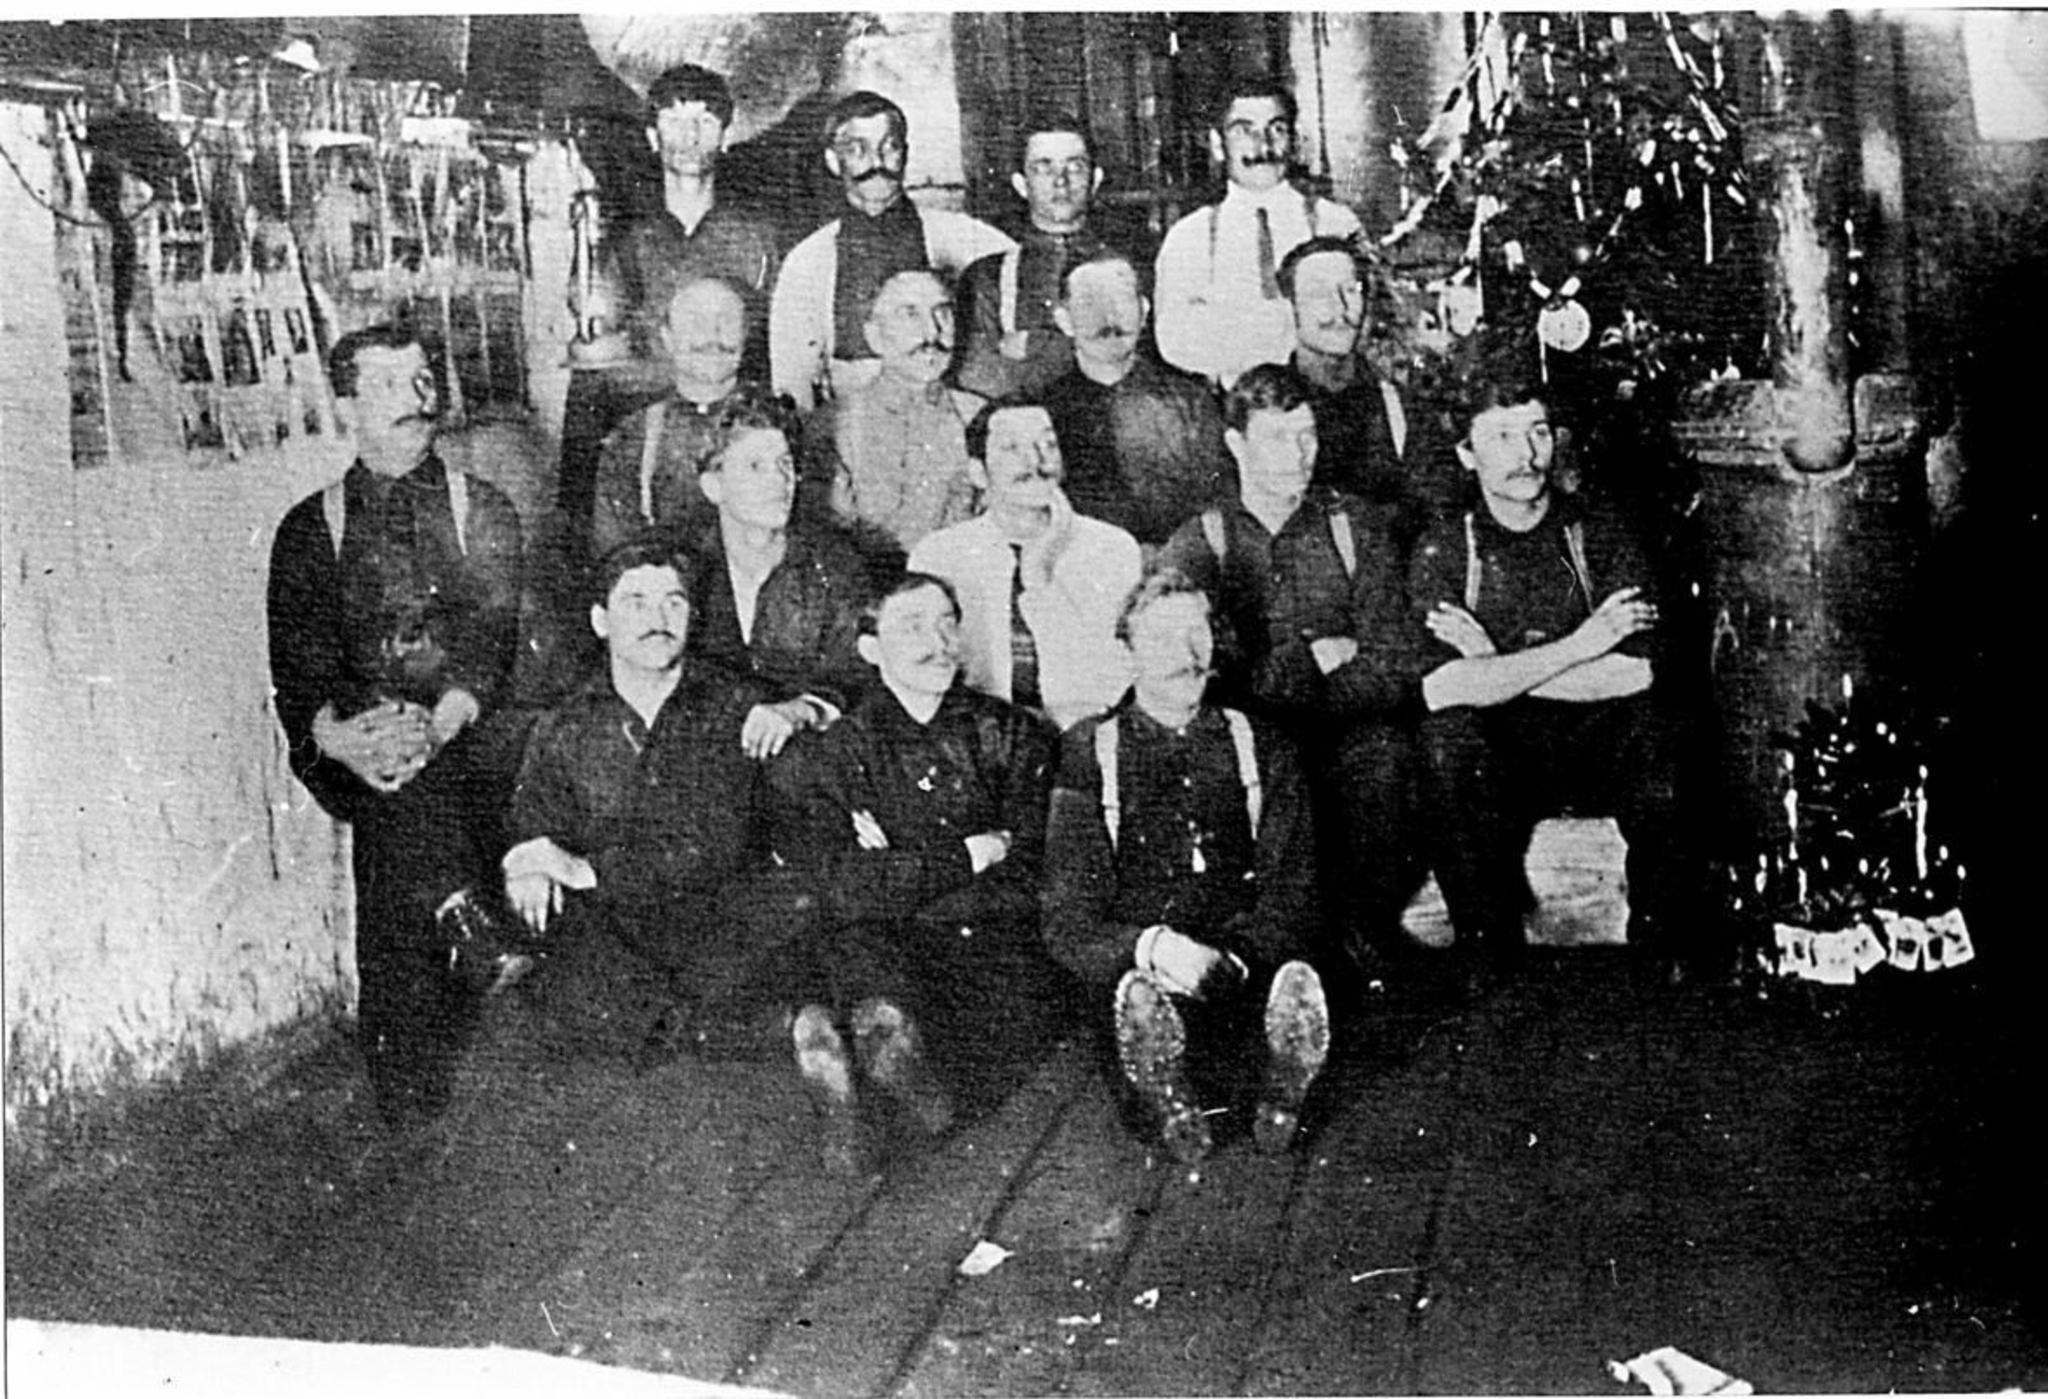 SUPPLIED IMAGE</p><p>Nick Sakaliuk (second from left, seated) at the internment camp in Fort Henry, circa 1915.</p>